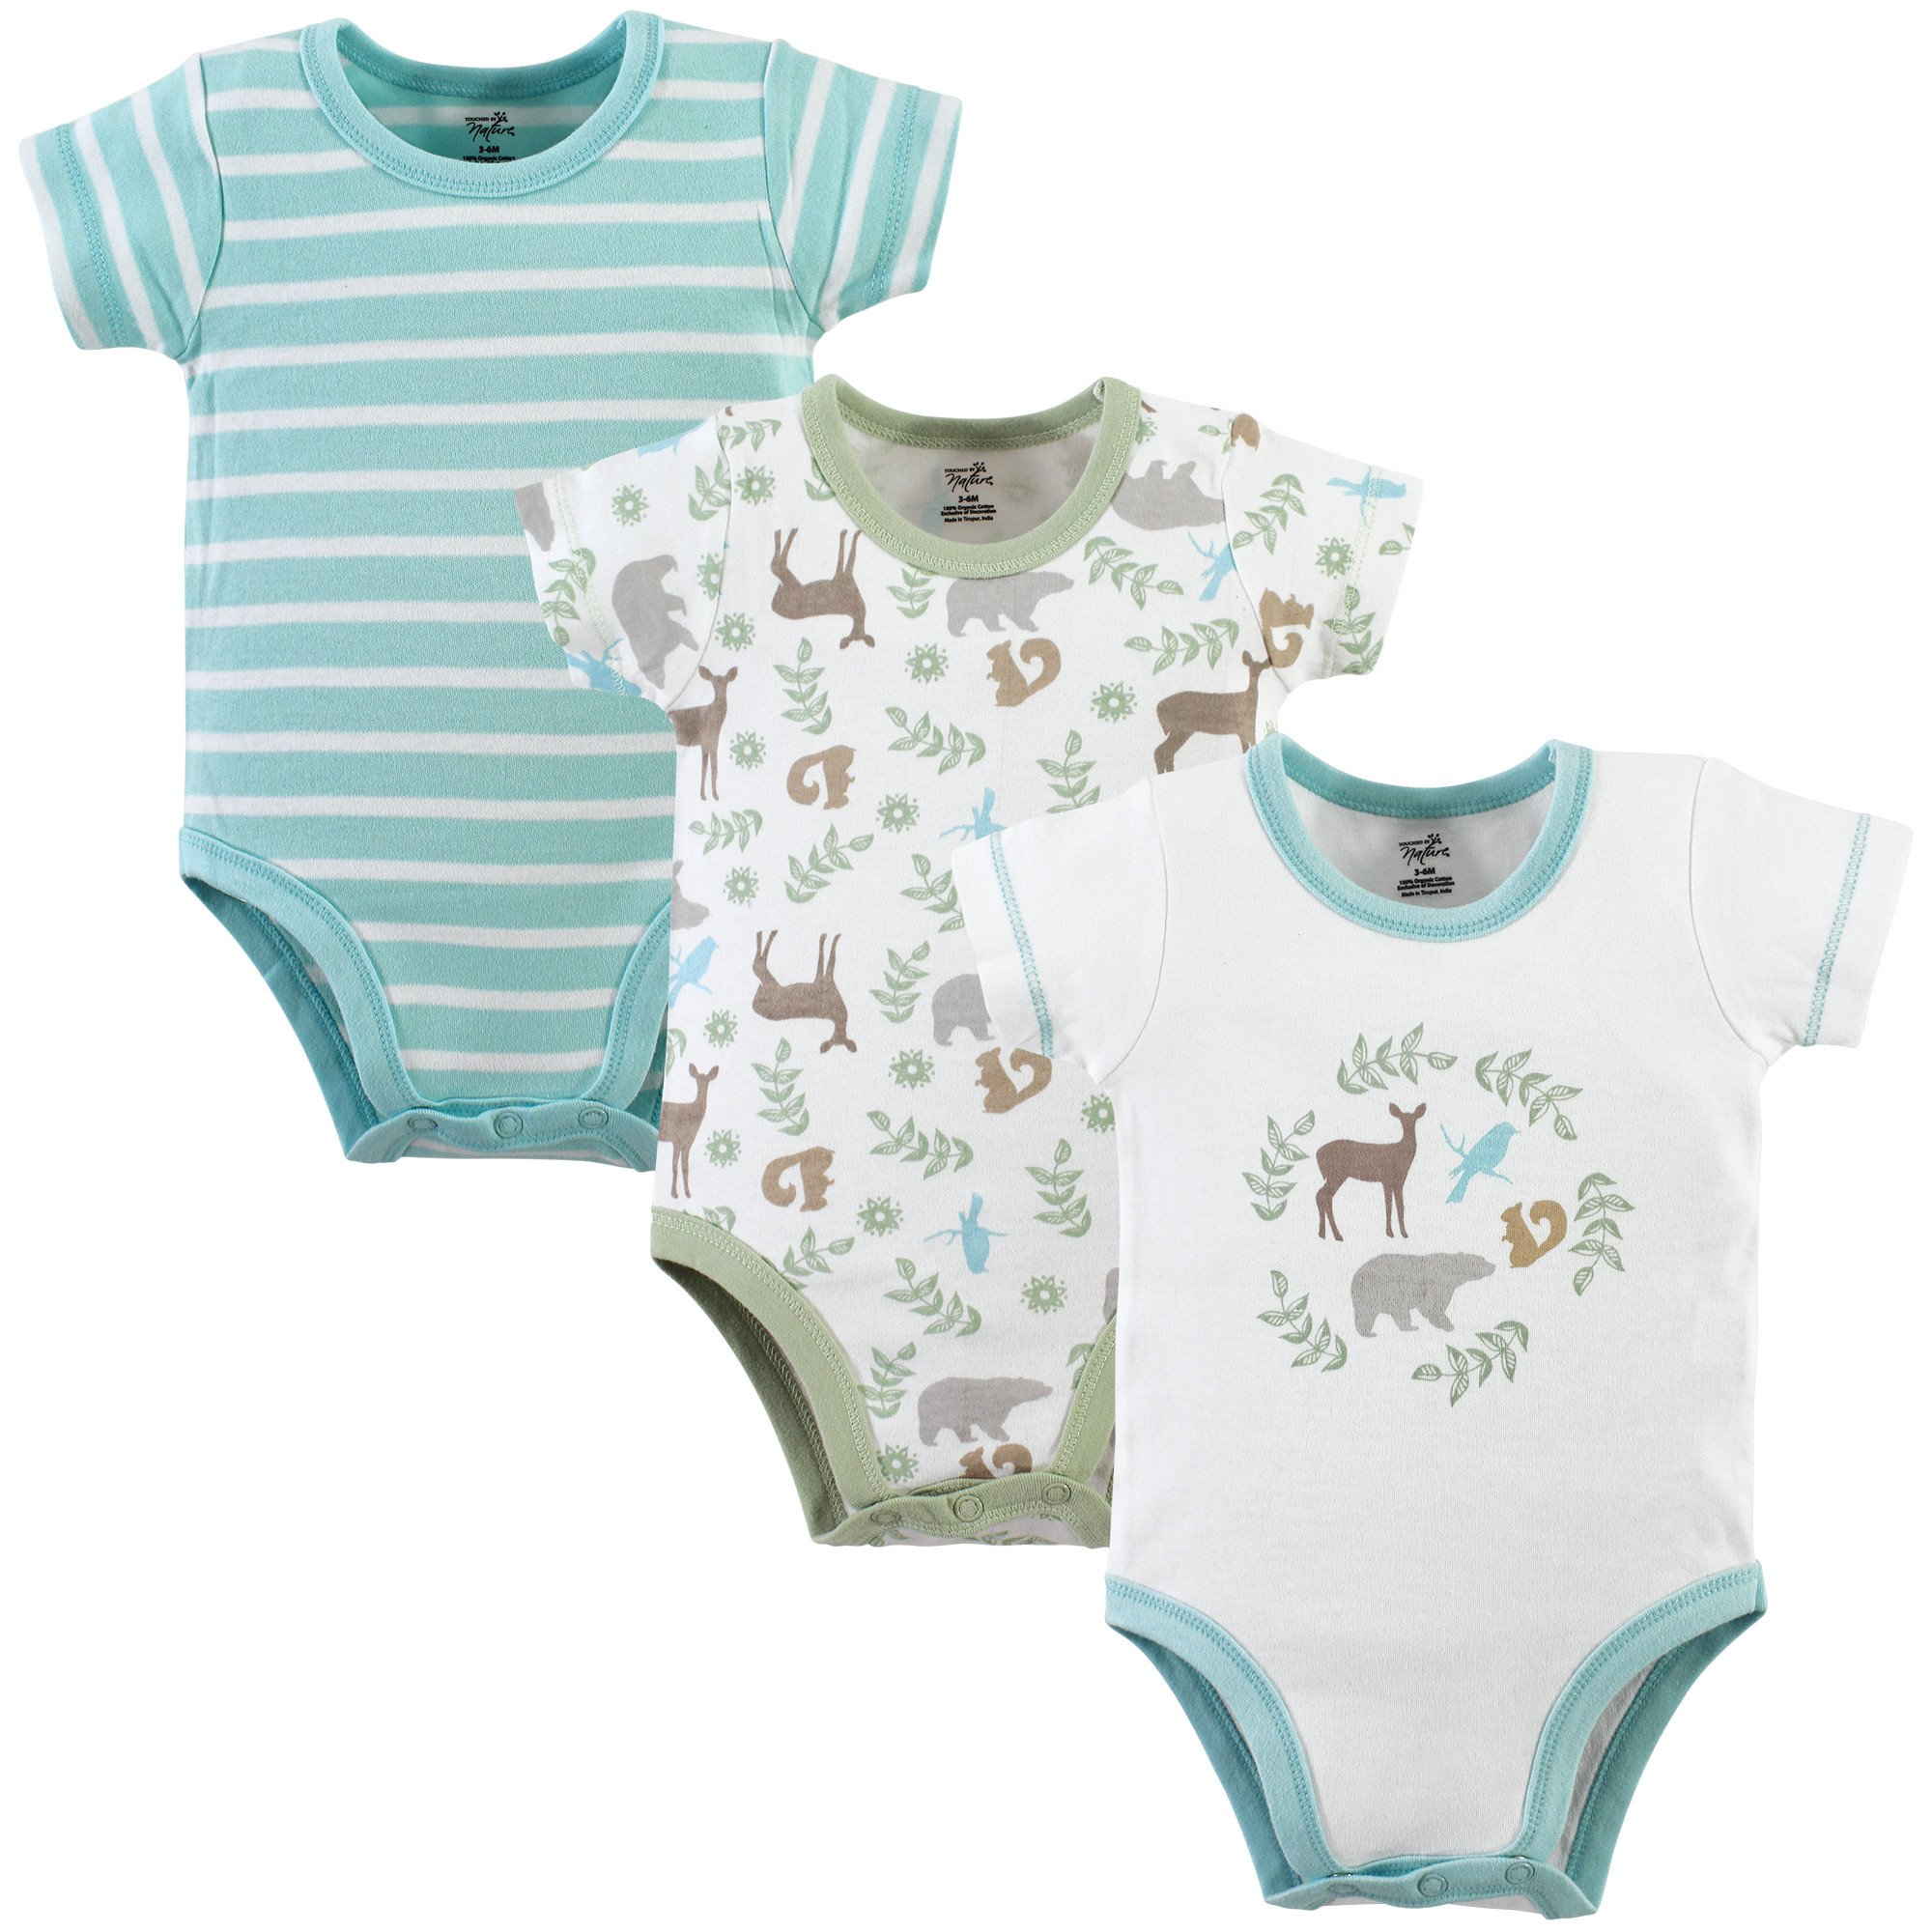 Touched by Nature Baby Organic Cotton Bodysuits, Forest 3 Pack, 3-6 Months